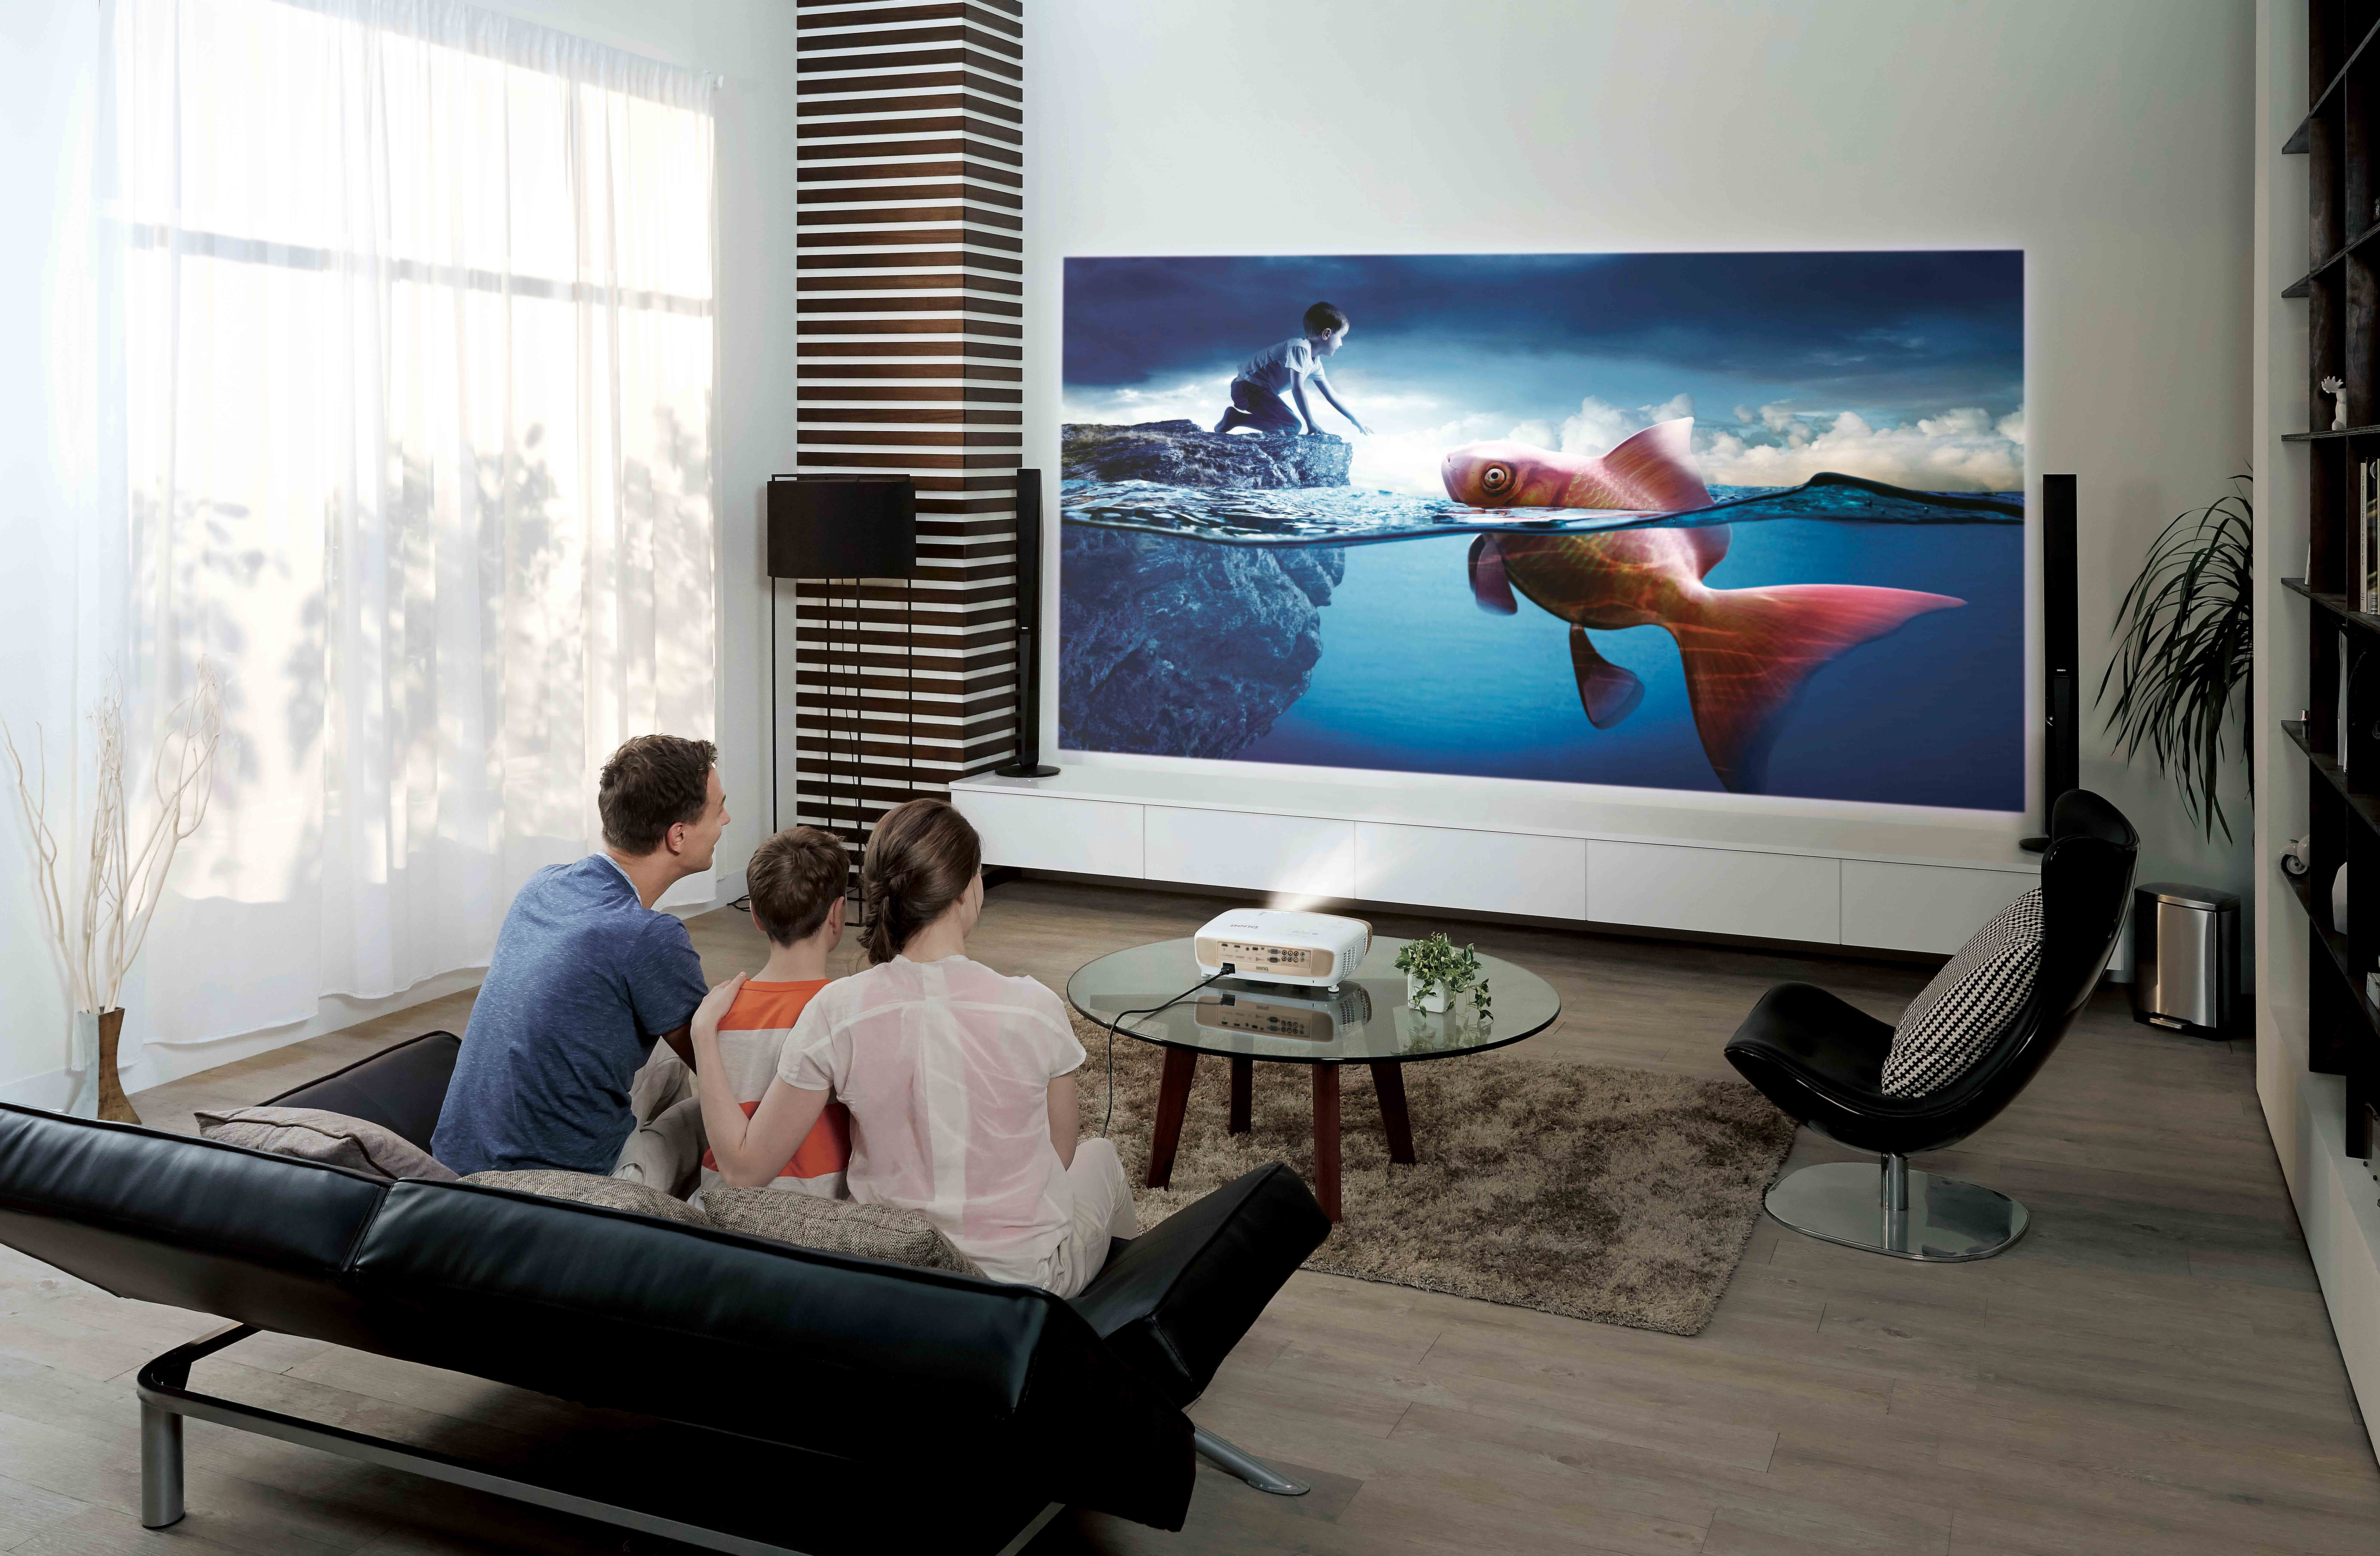 Best projection tv for home